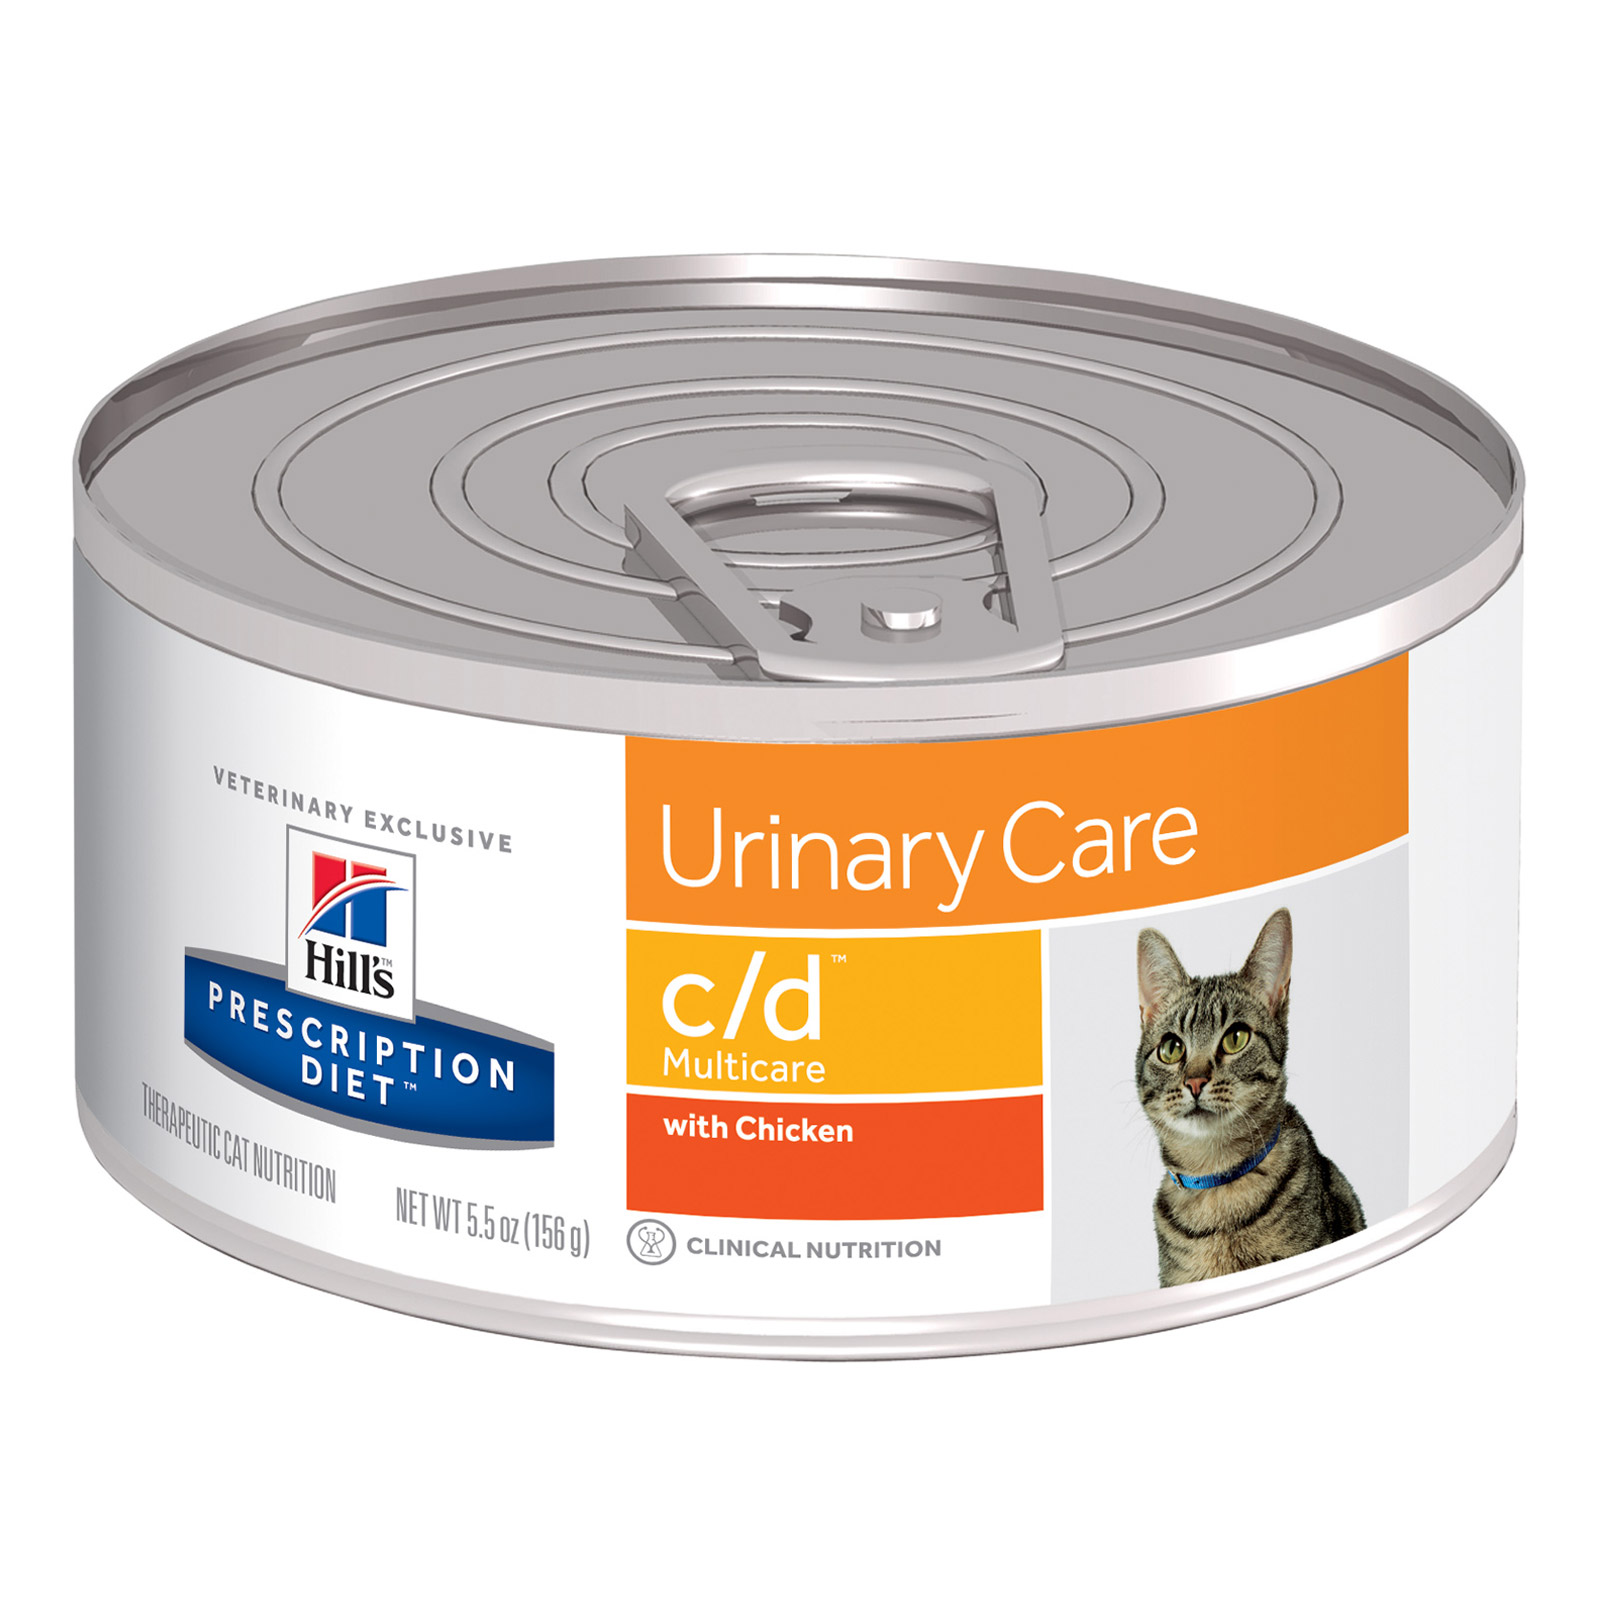 Hill's Prescription Diet c/d Multicare Urinary Care Canned Cat Food